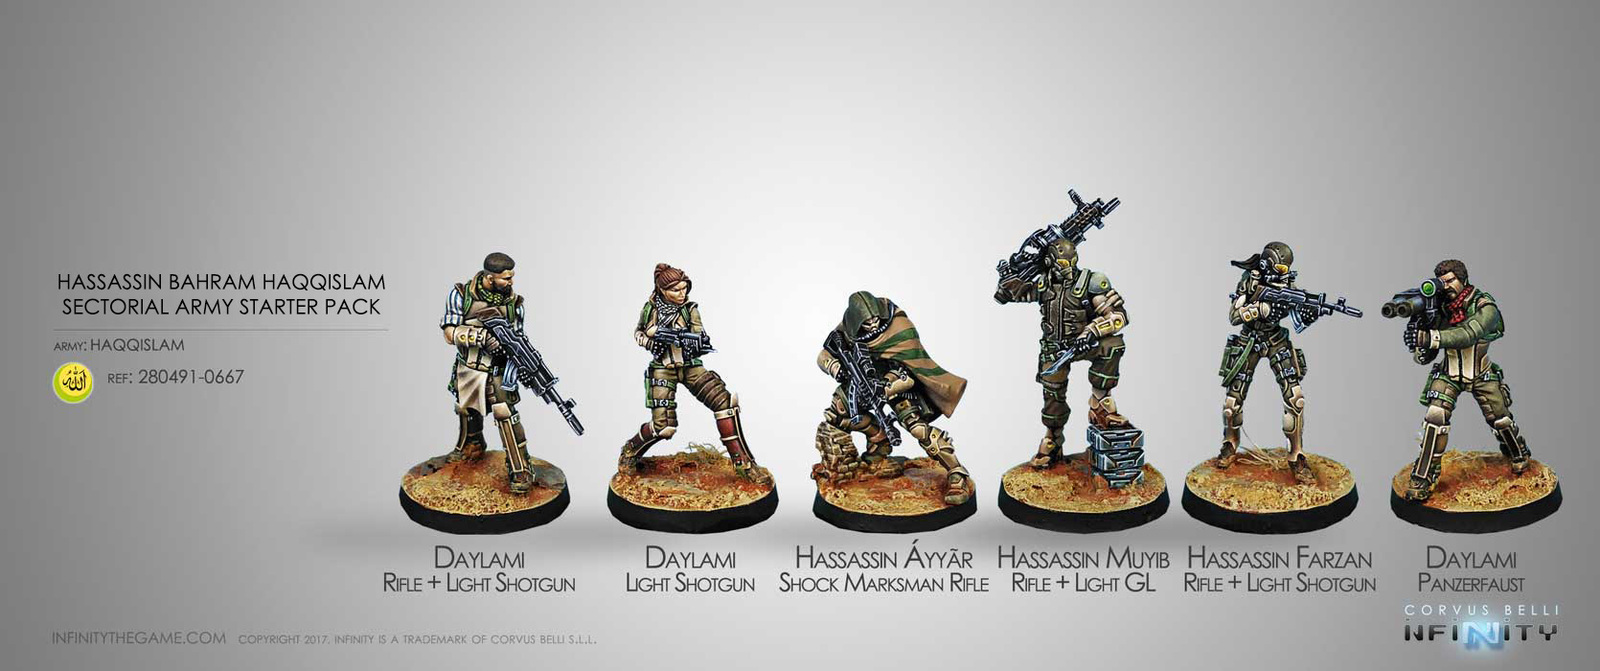 Infinity: Hassassin Bahram Sectorial Army Starter Pack image